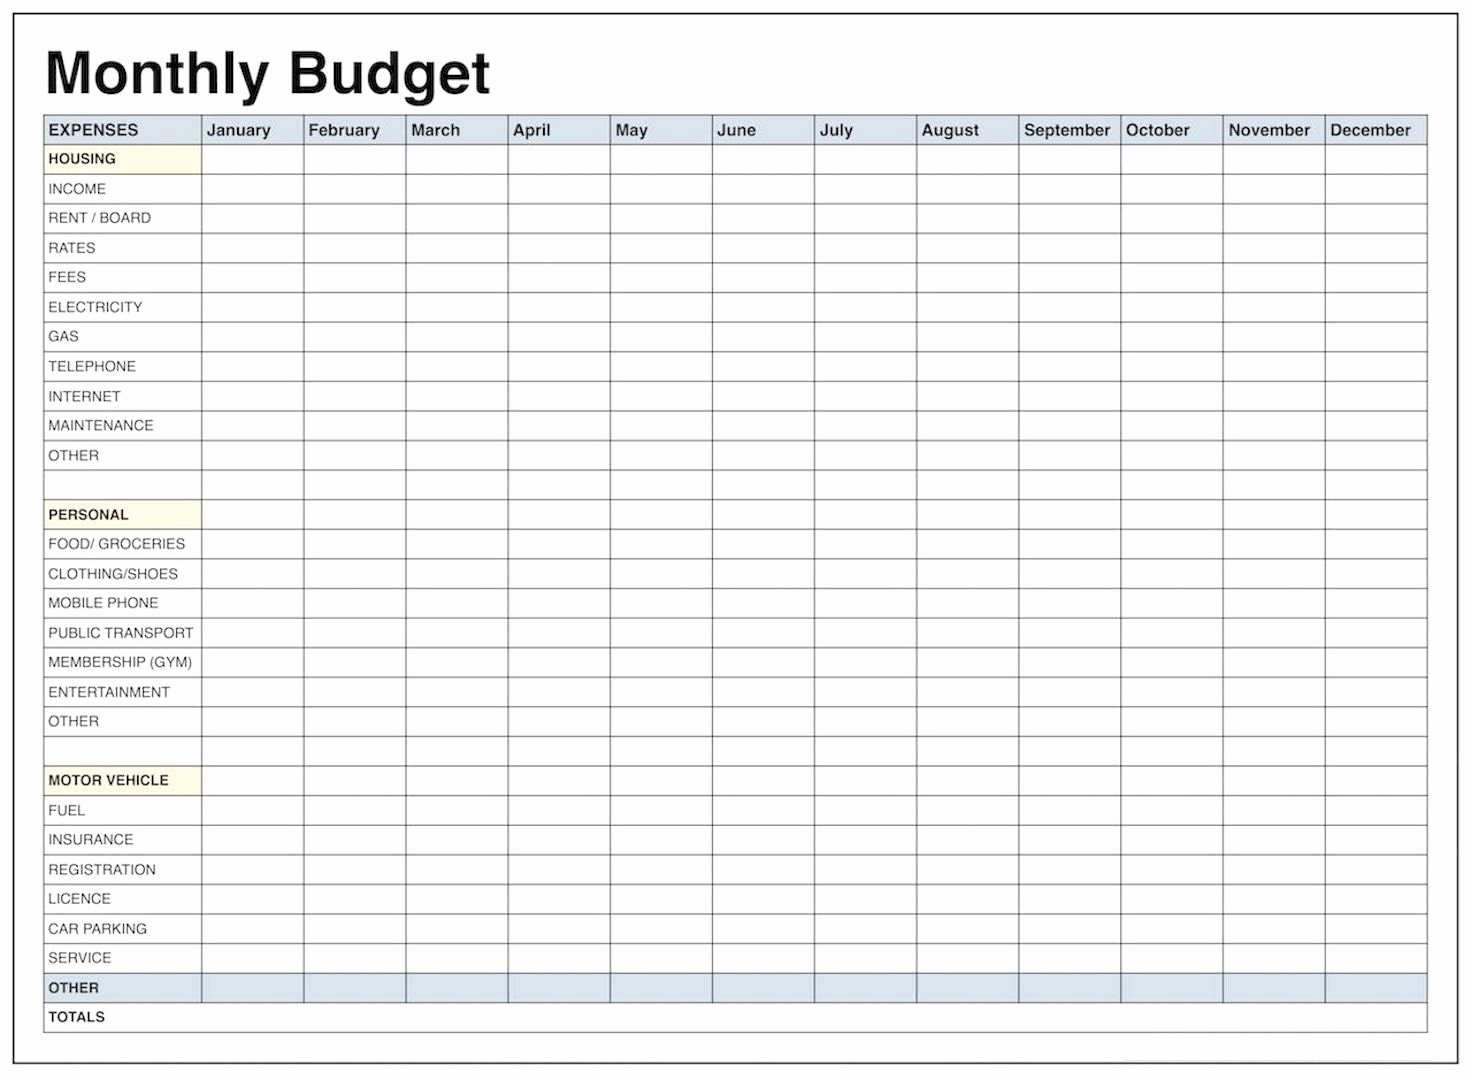 Monthly Budget Excel Spreadsheet Template New Blank Monthly Bud Template Pdf